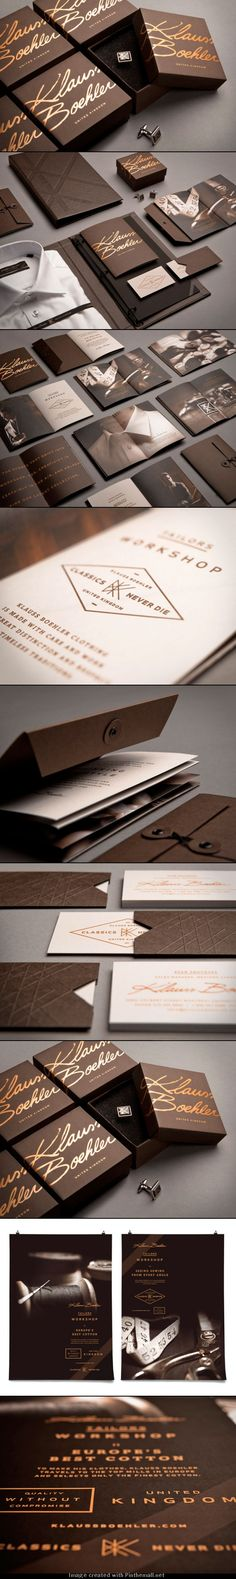 Klauss Boehler Beautiful #identity #packaging #branding PD